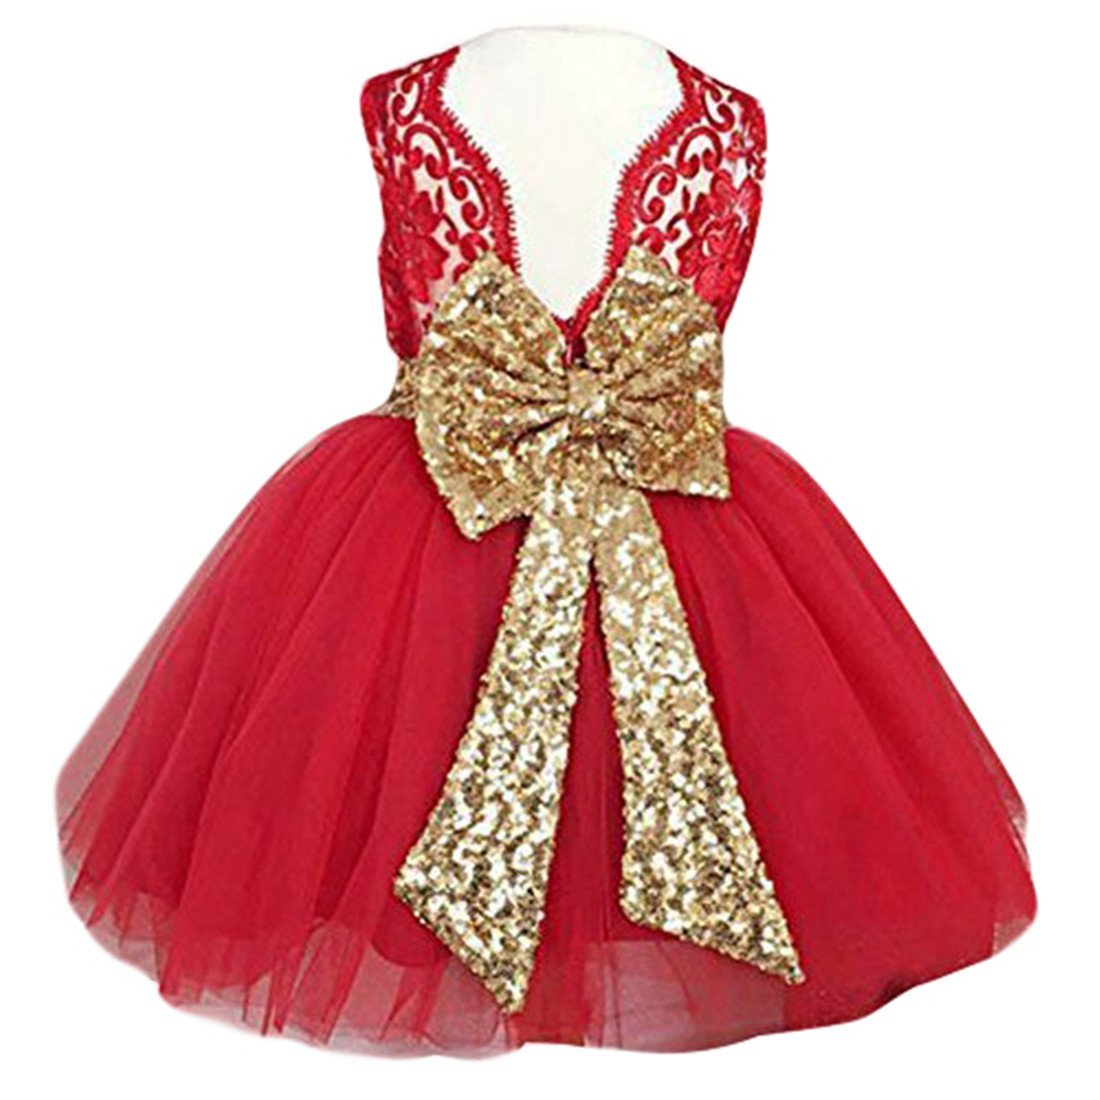 EsTong Newborn Baby Girl Sequin Bowknot Floral Princess Dress Tulle Tutu Outfit